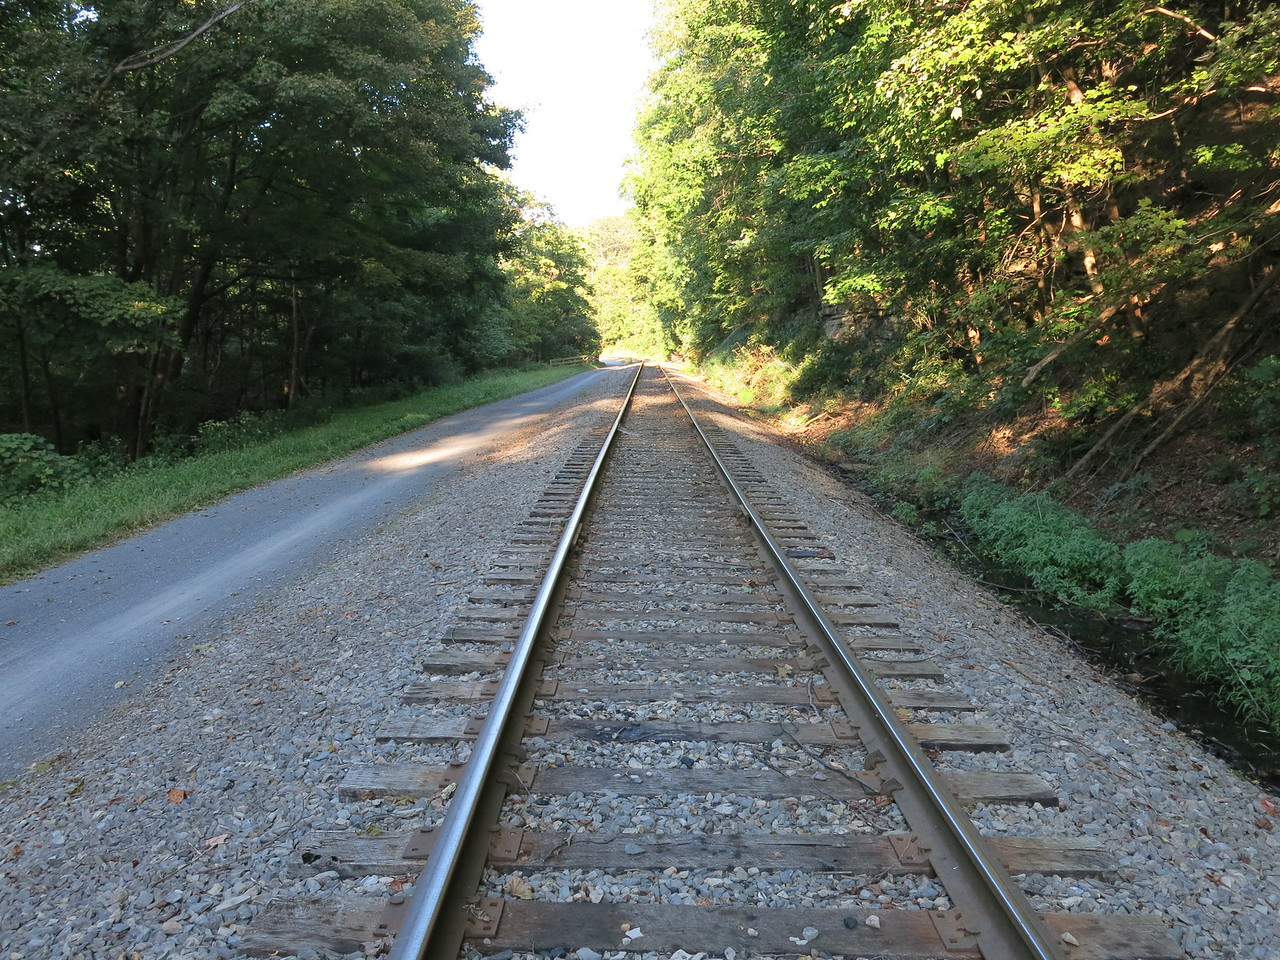 View of the rails and trail on the left